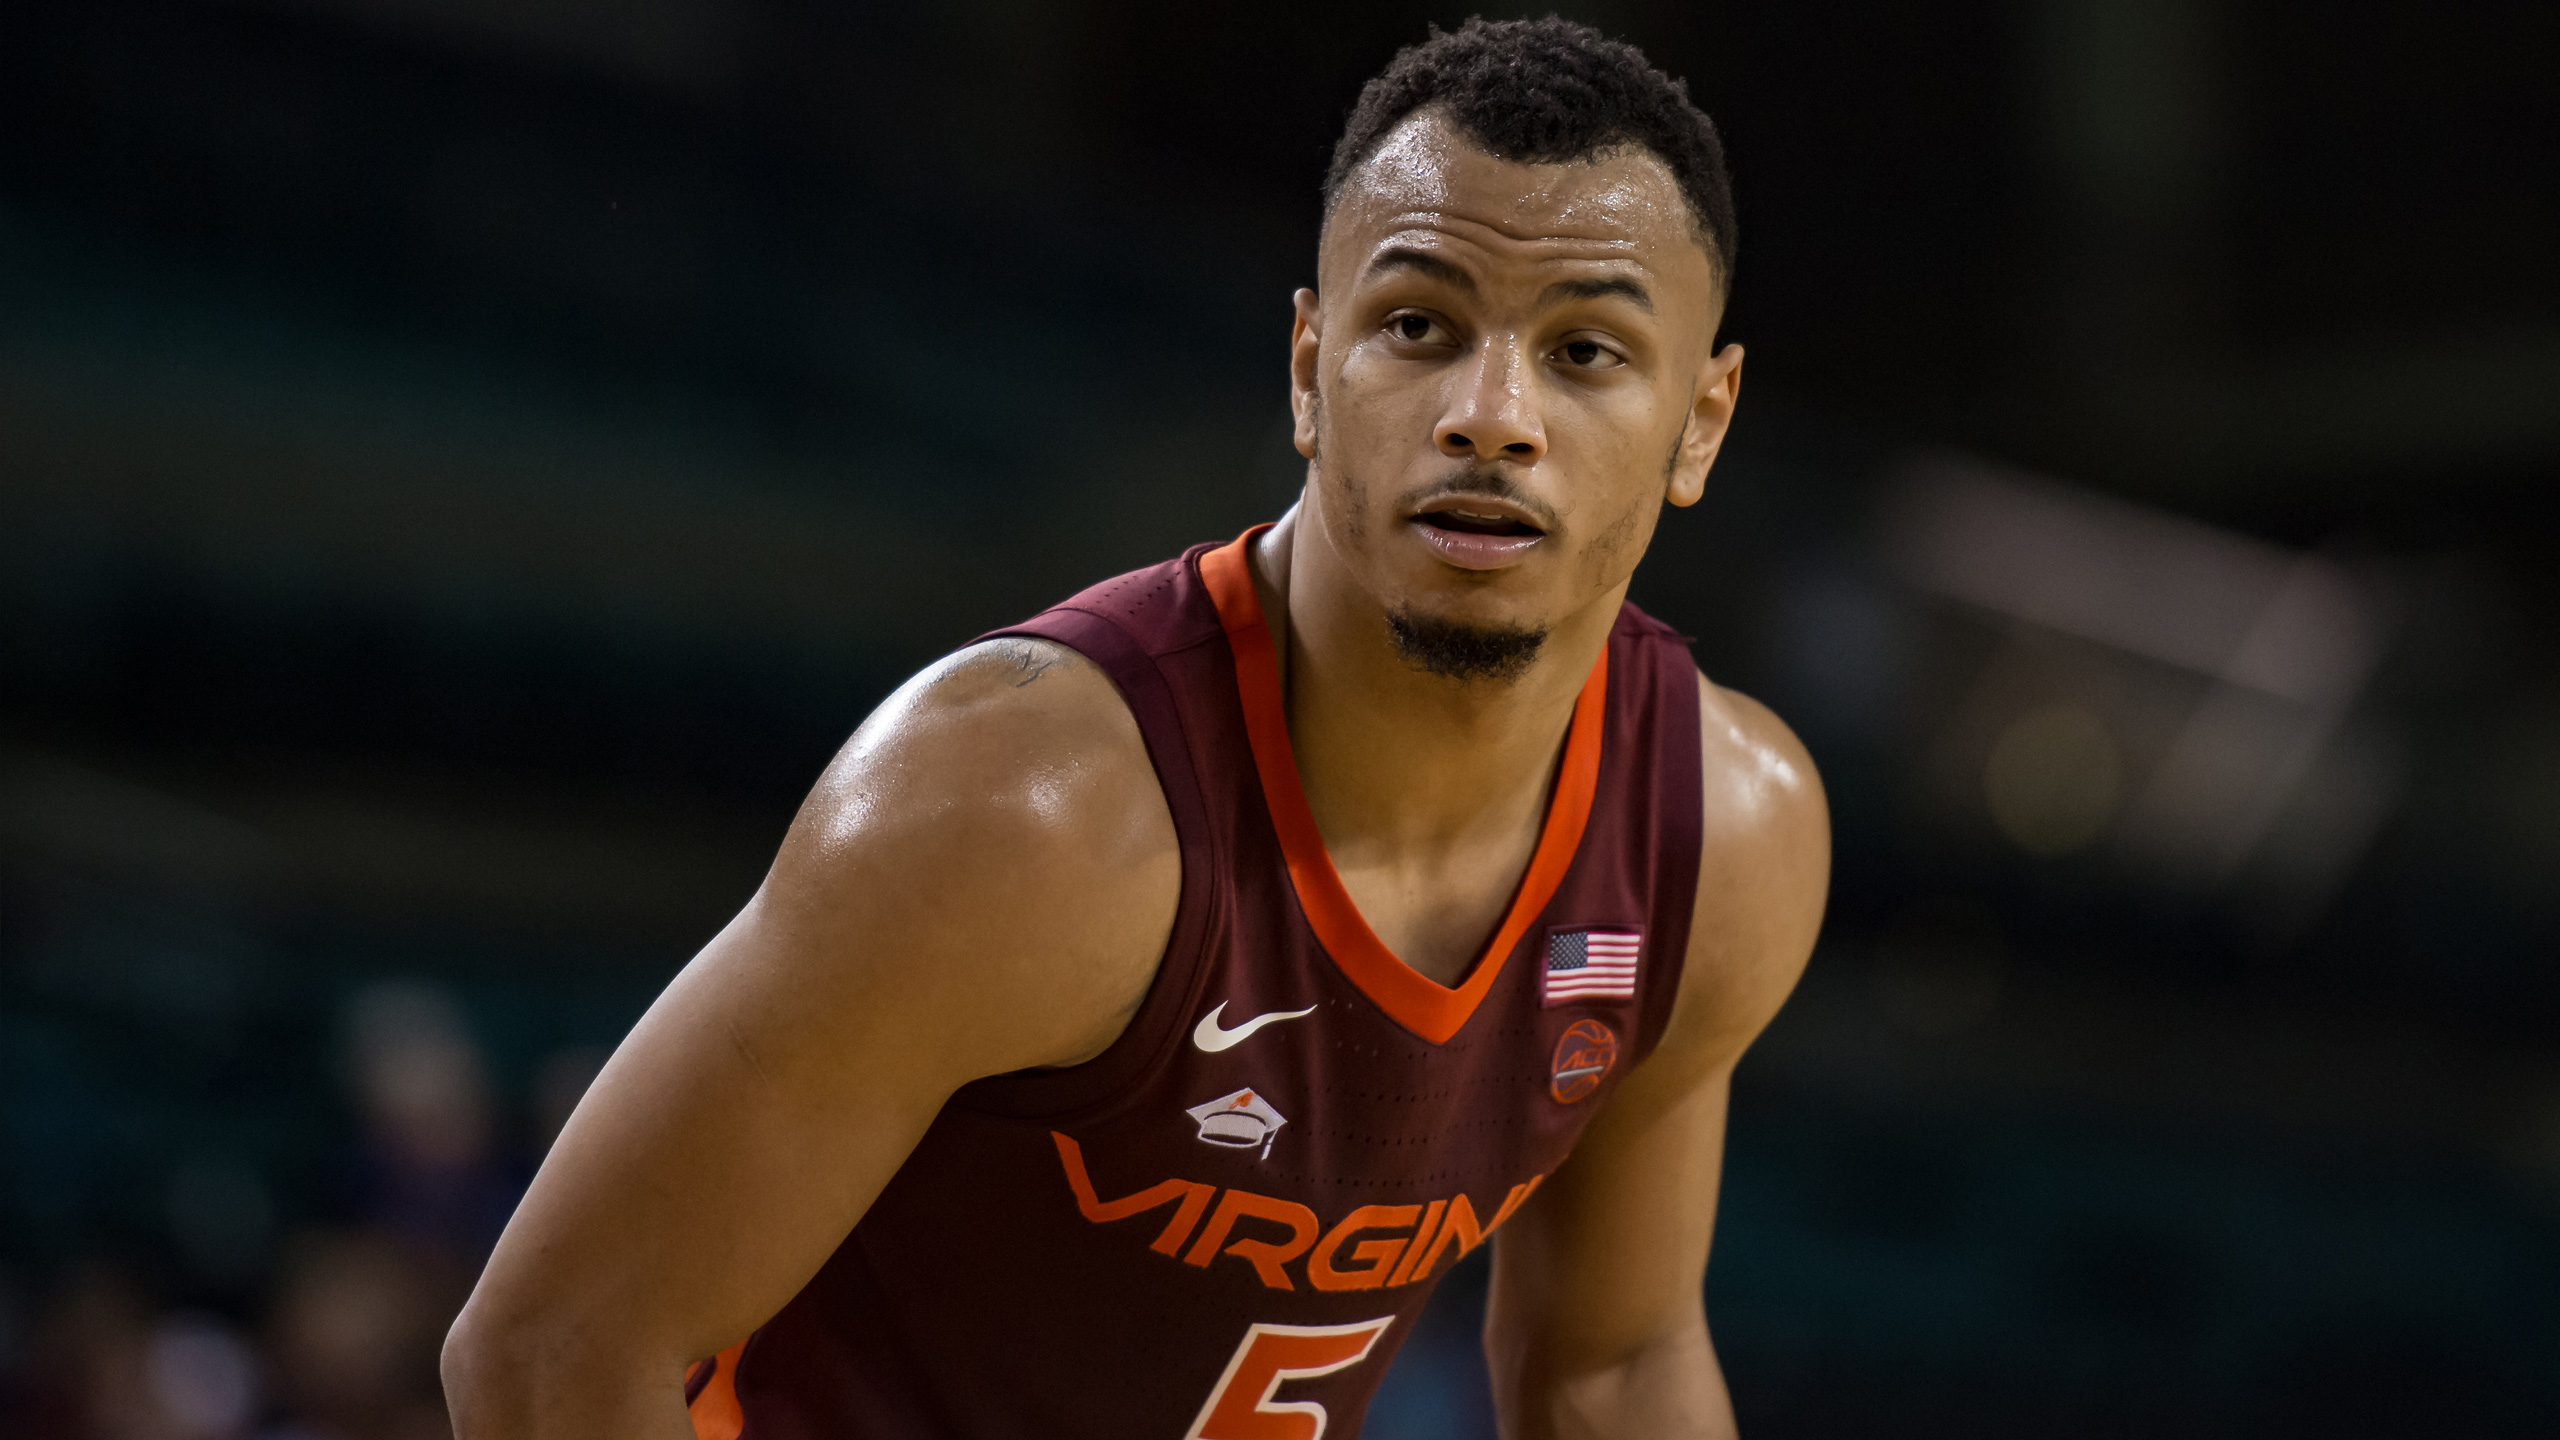 North Carolina A&T vs. #13 Virginia Tech (M Basketball)